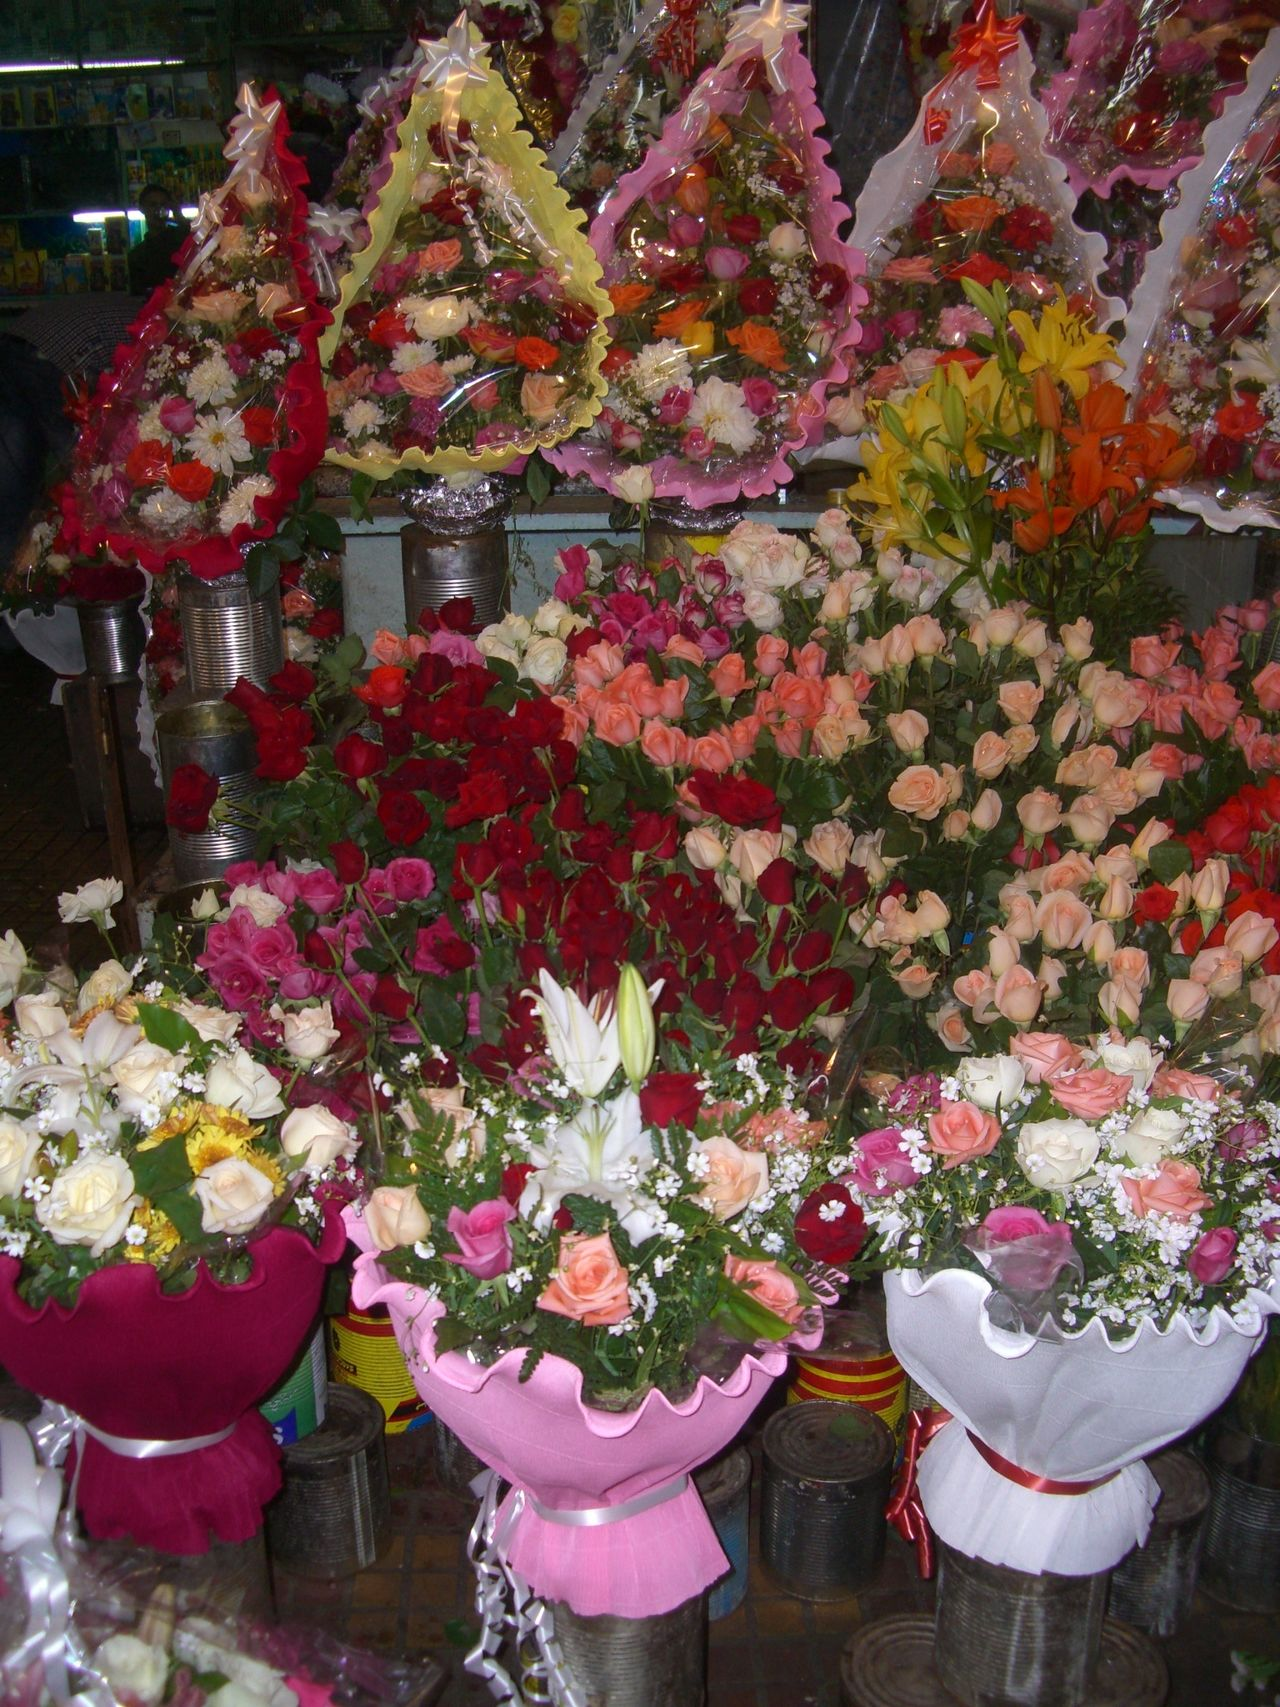 Flower Display, Medina Celebration Composition Flower Display Flower Market Flowers Freshness Full Frame Indoor Photography Medina Morocco Multi Coloured No People Tangier